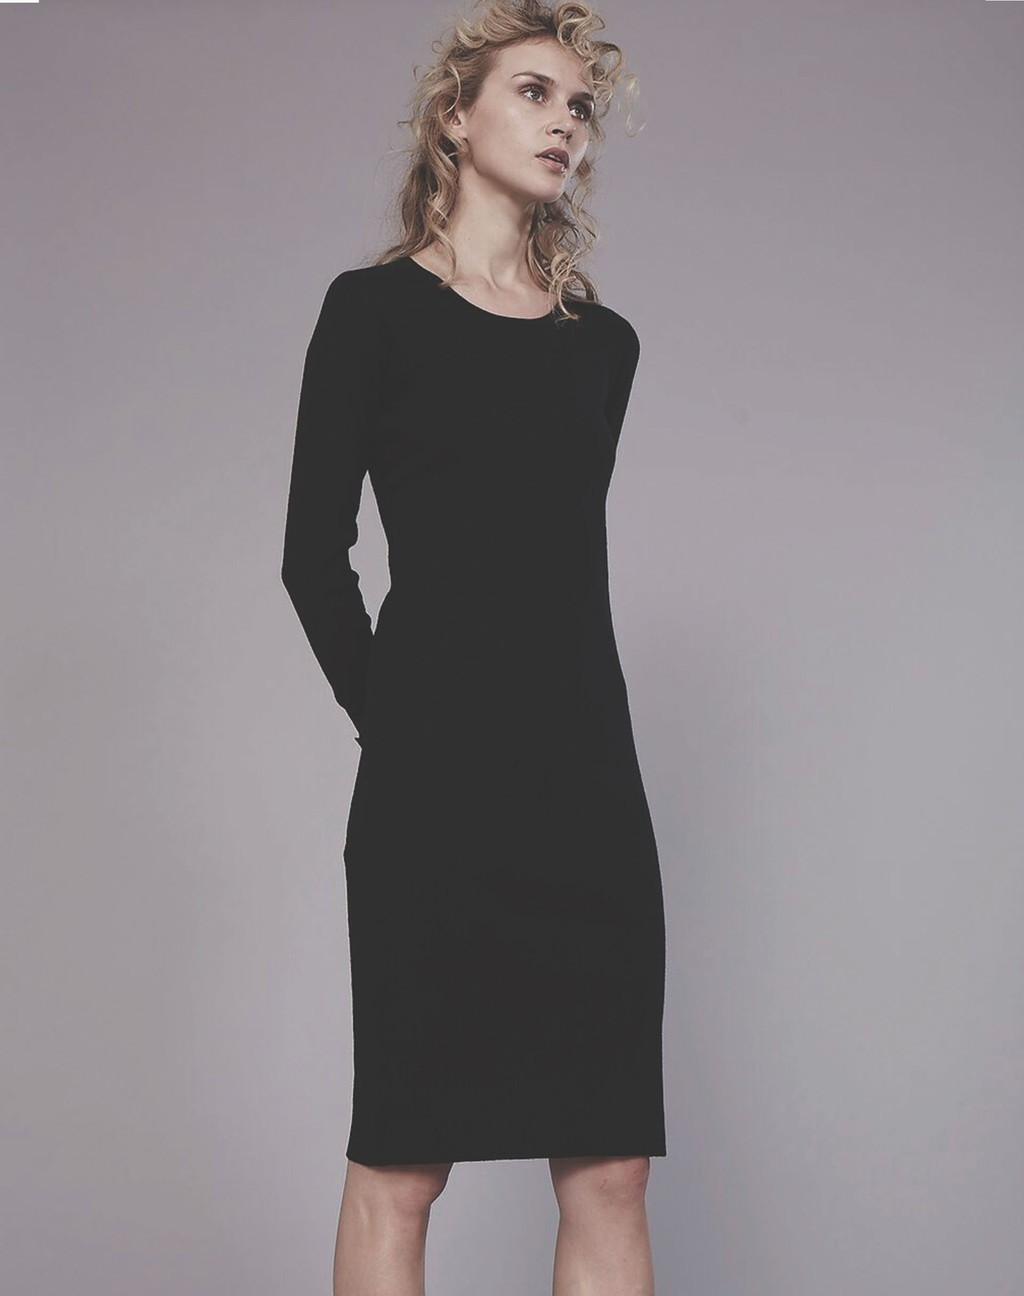 2 In 1 Skinny Rib Dress - fit: tight; pattern: plain; style: bodycon; predominant colour: black; occasions: evening; length: on the knee; fibres: wool - 100%; neckline: crew; sleeve length: long sleeve; sleeve style: standard; texture group: jersey - clingy; pattern type: fabric; season: s/s 2016; wardrobe: event